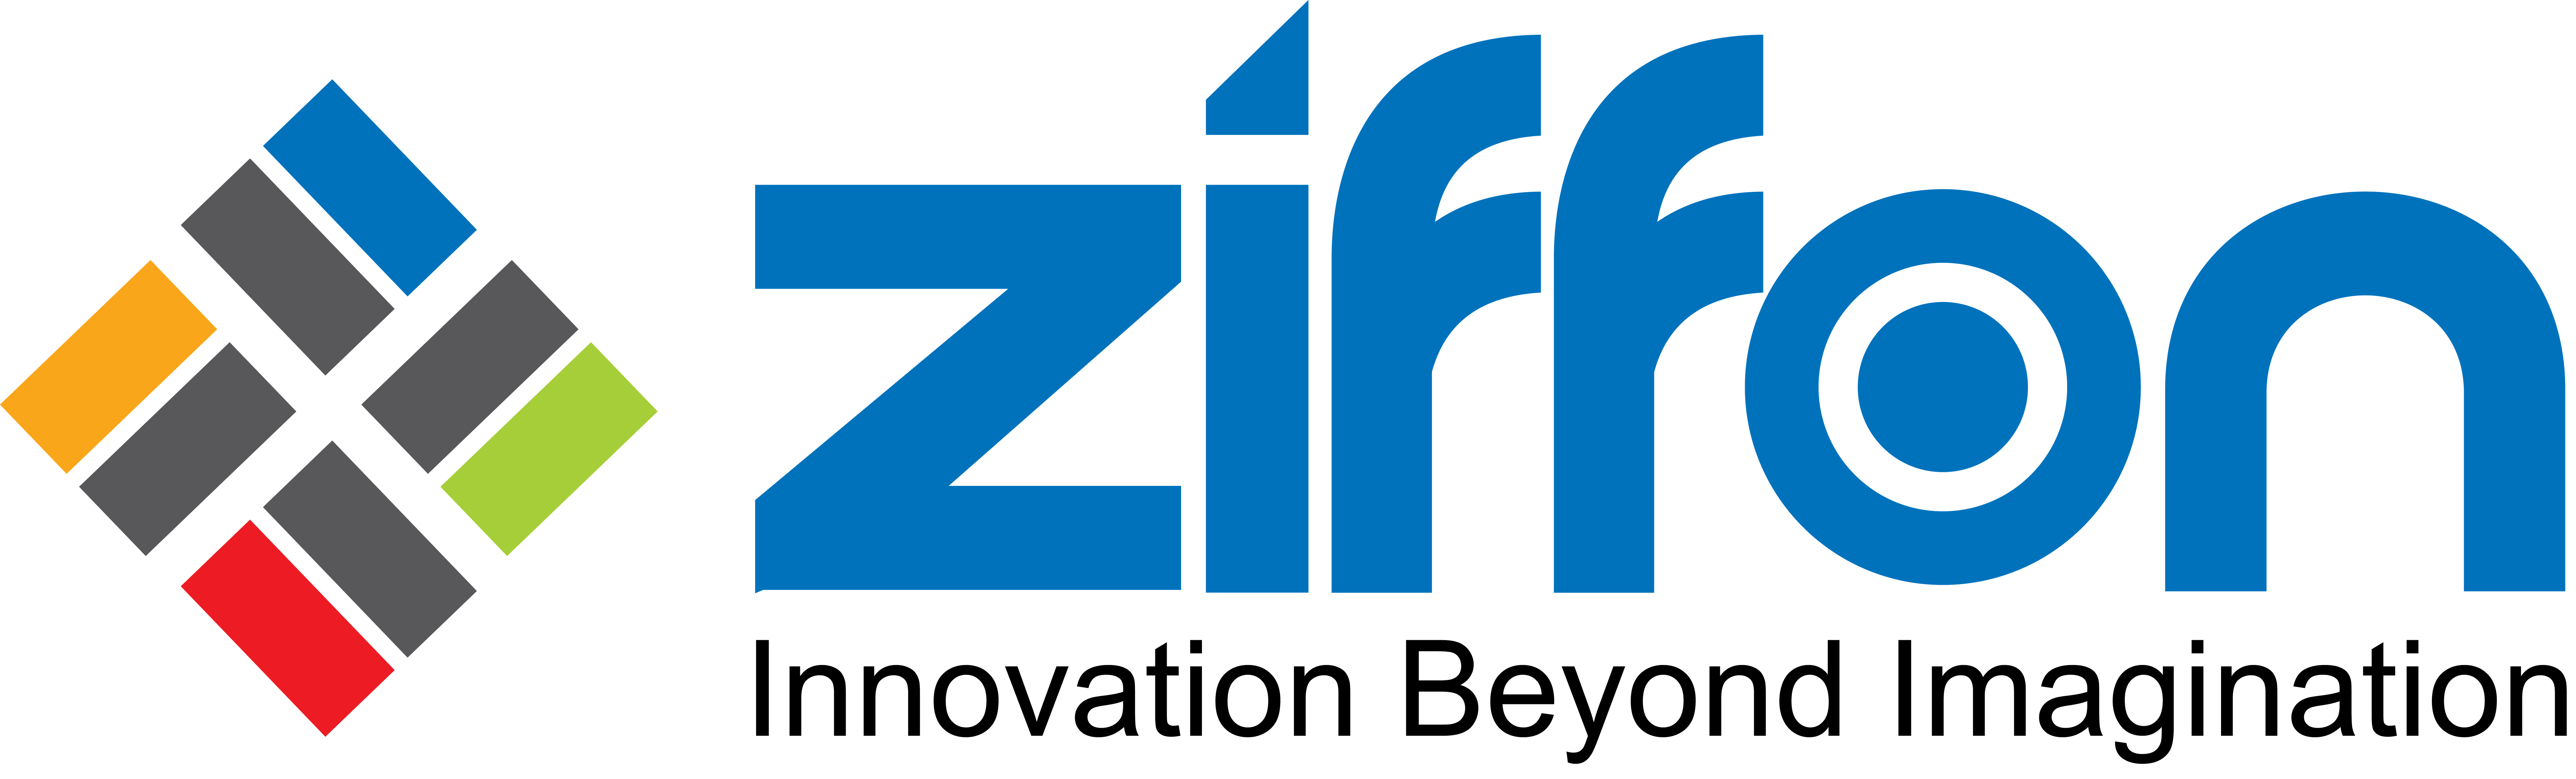 Ziffon India Logo